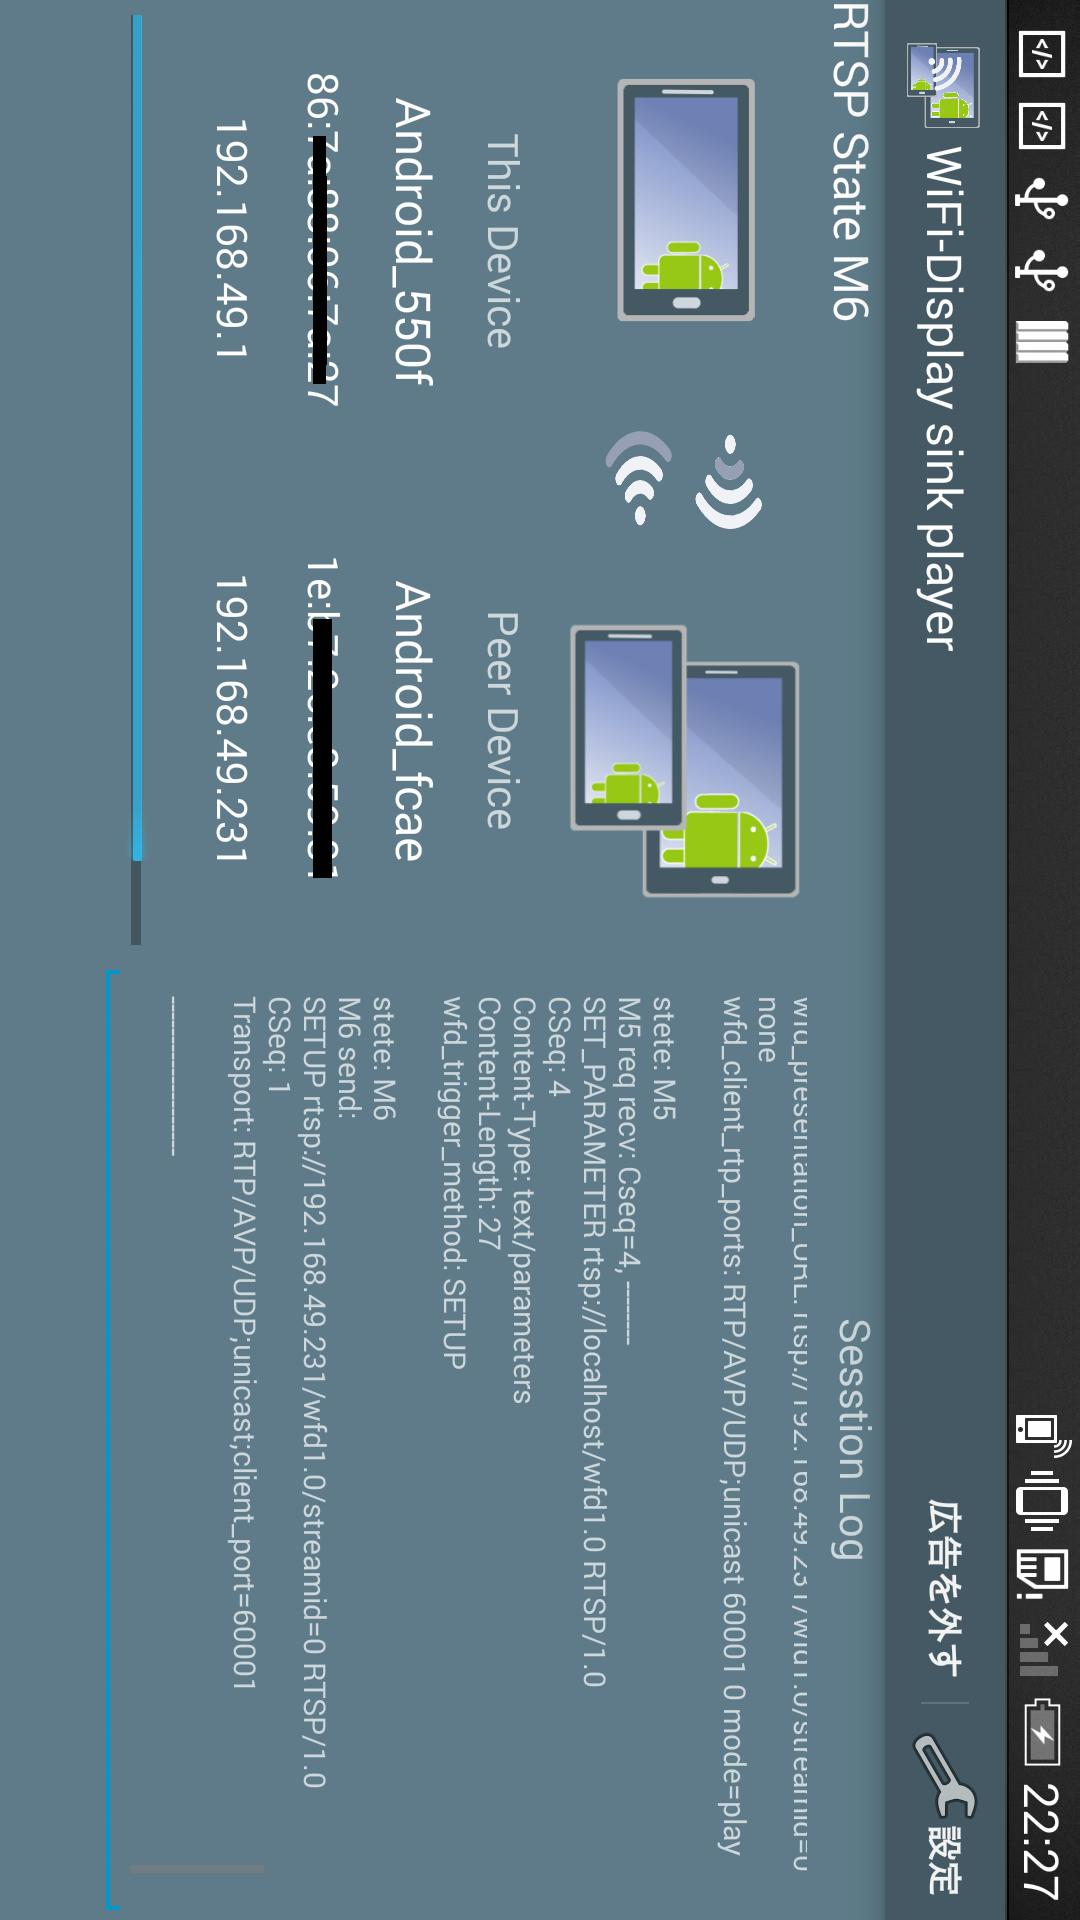 WiFi-Display(miracast) sink for Android - APK Download